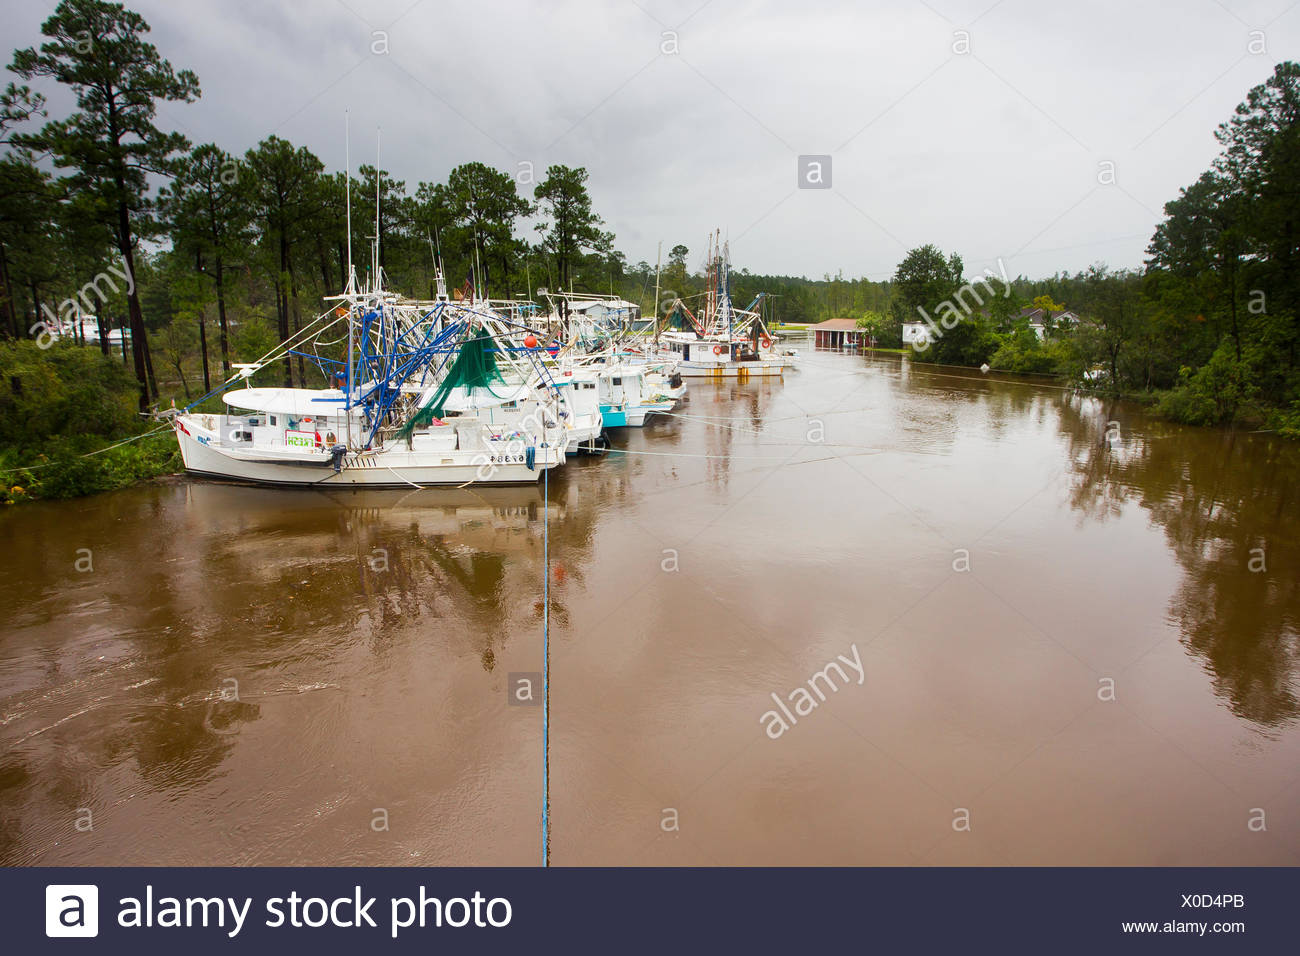 Fishing boats tied up in a river to protect them from Hurricane Isaac. - Stock Image